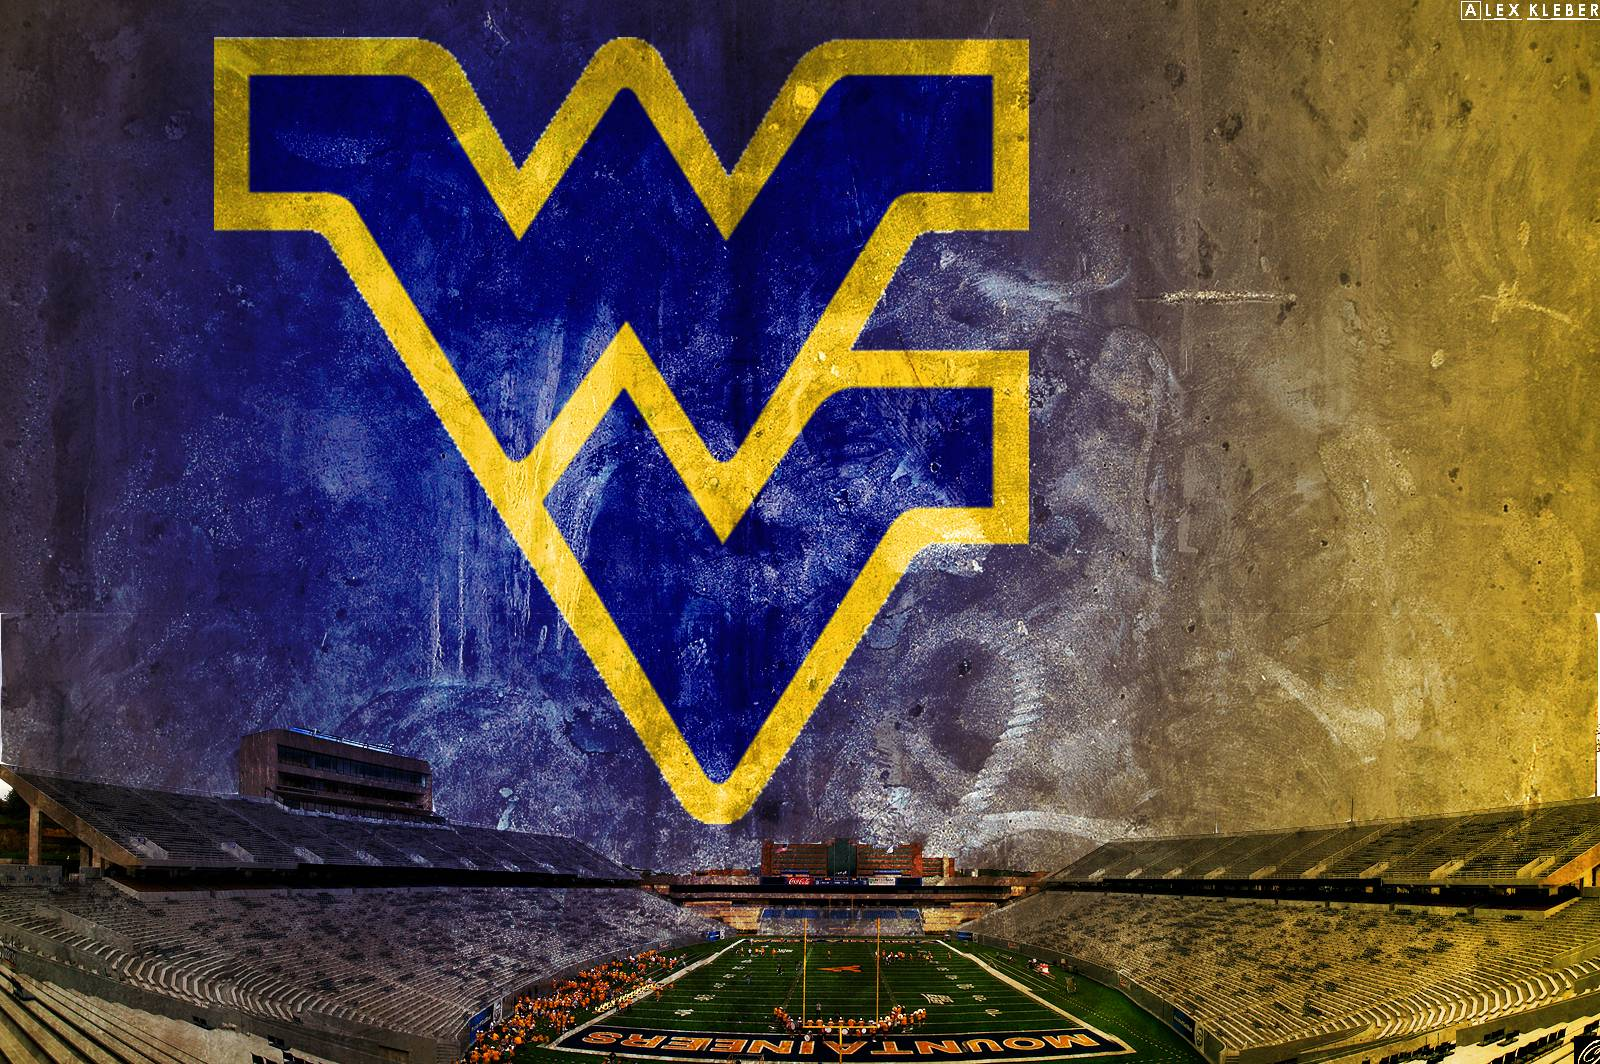 Free Wvu Wallpapers